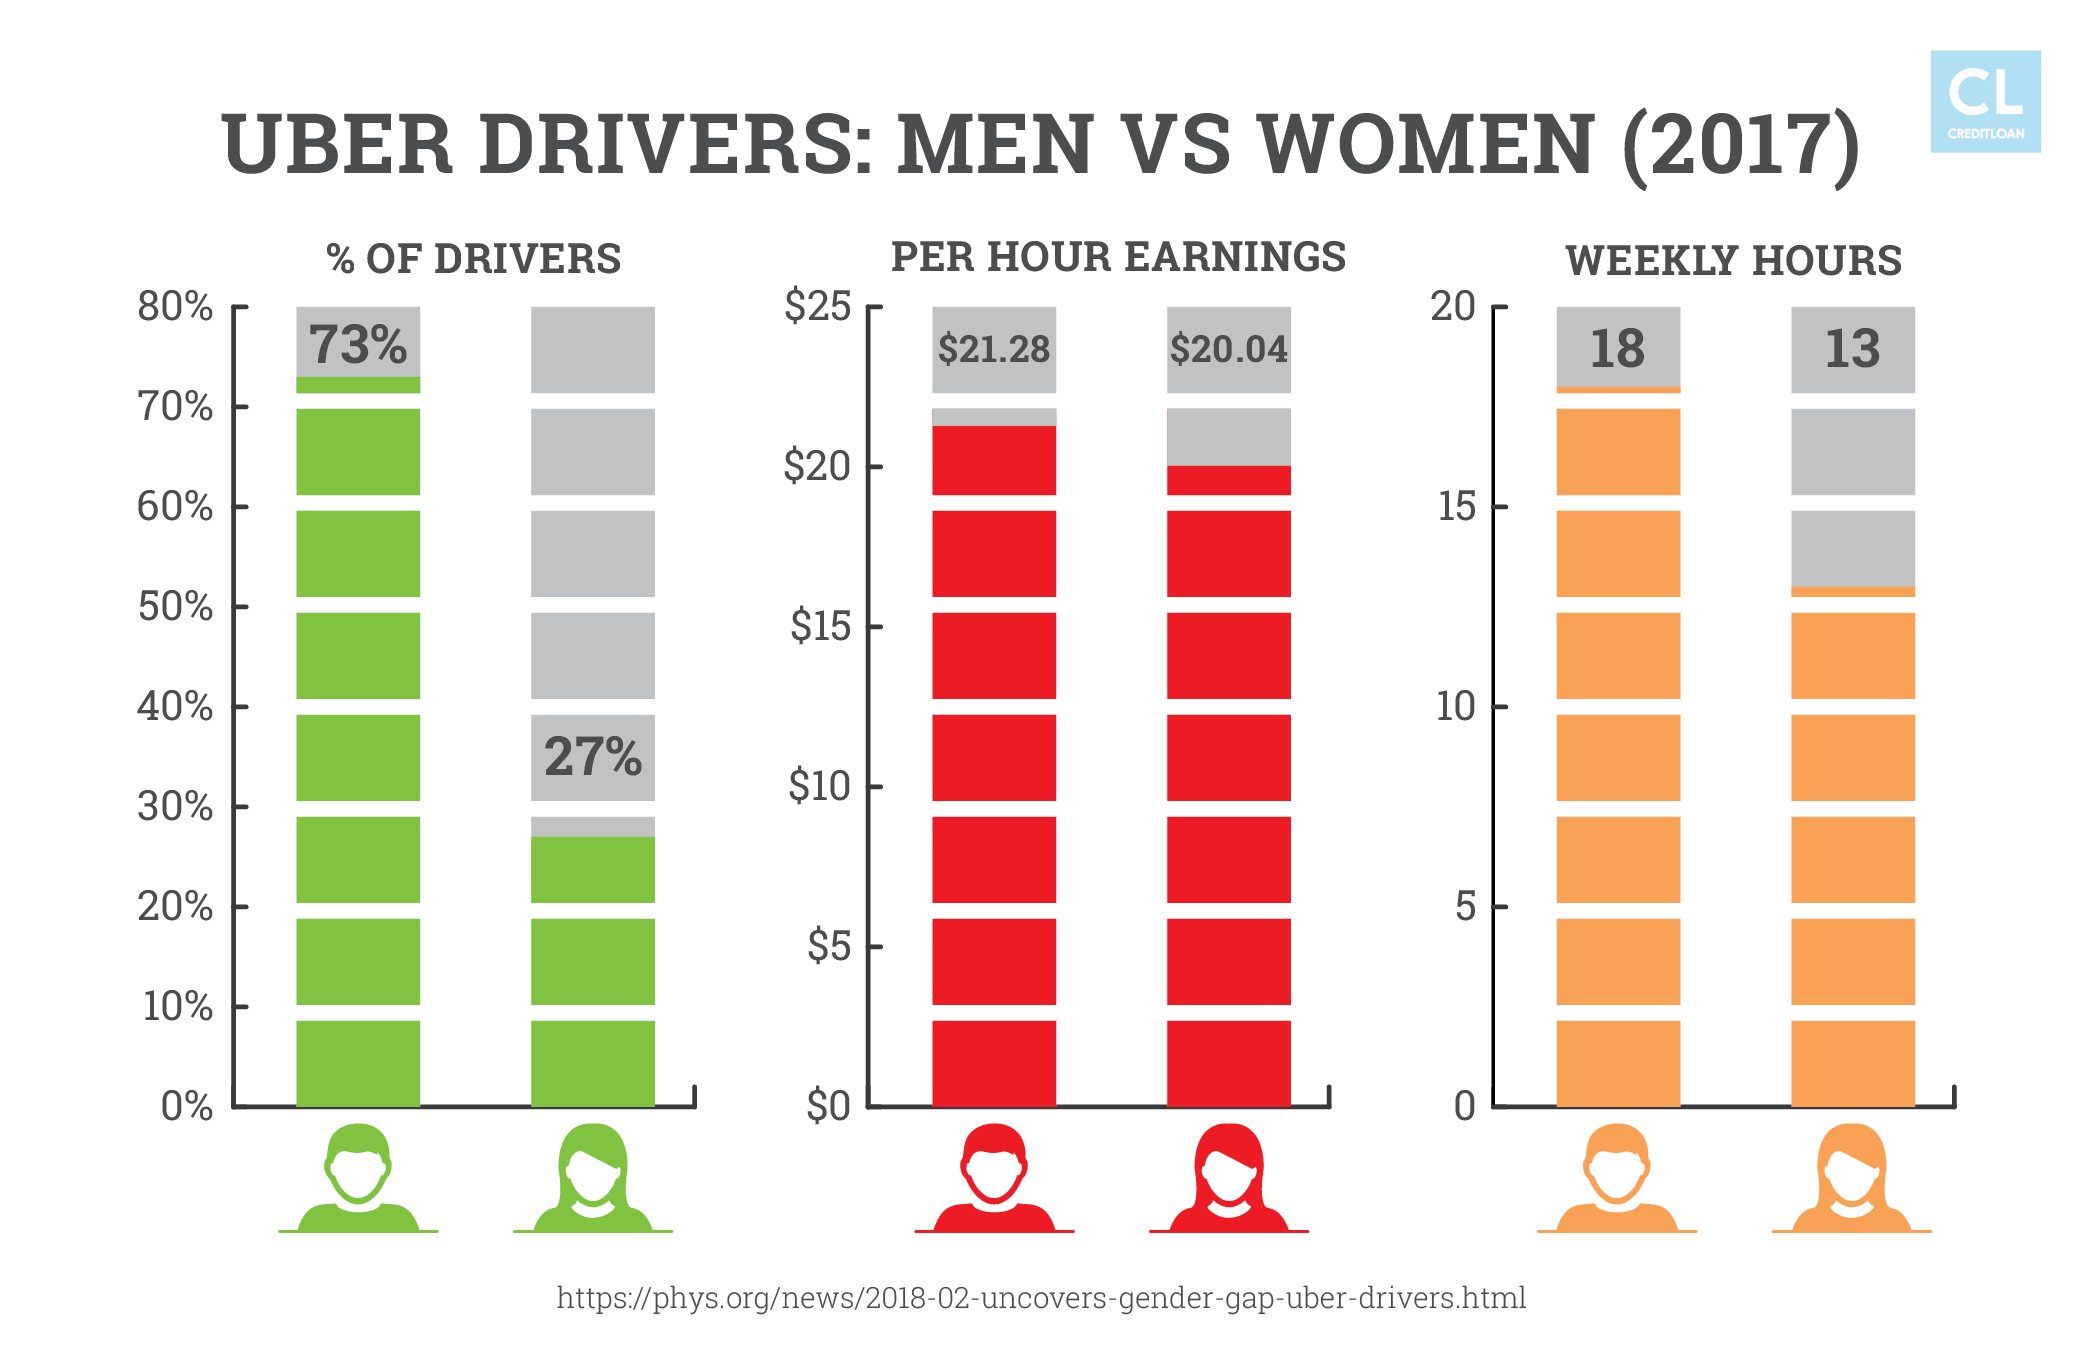 Men Versus Women Uber Drivers 2017